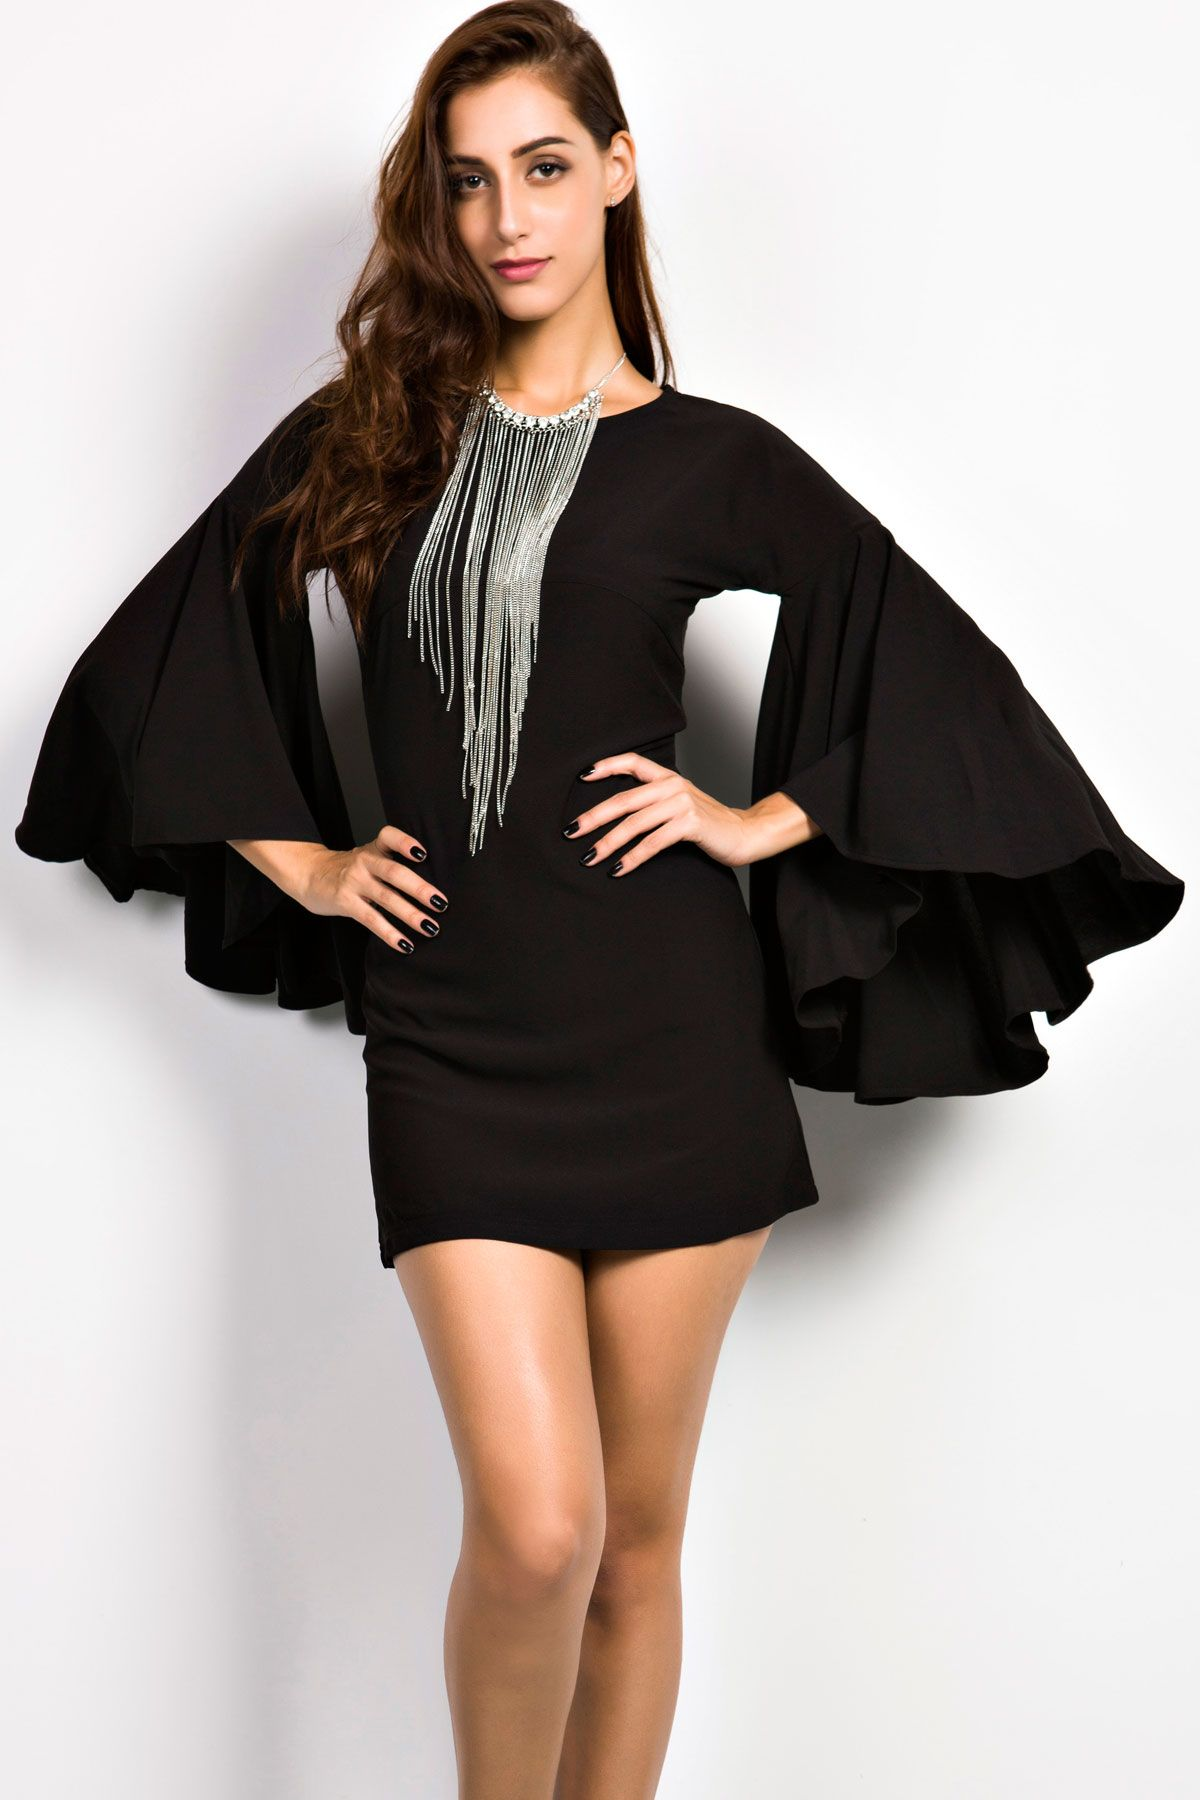 Charming Goddess Black Bell Sleeves Dress with Necklace - OASAP.com